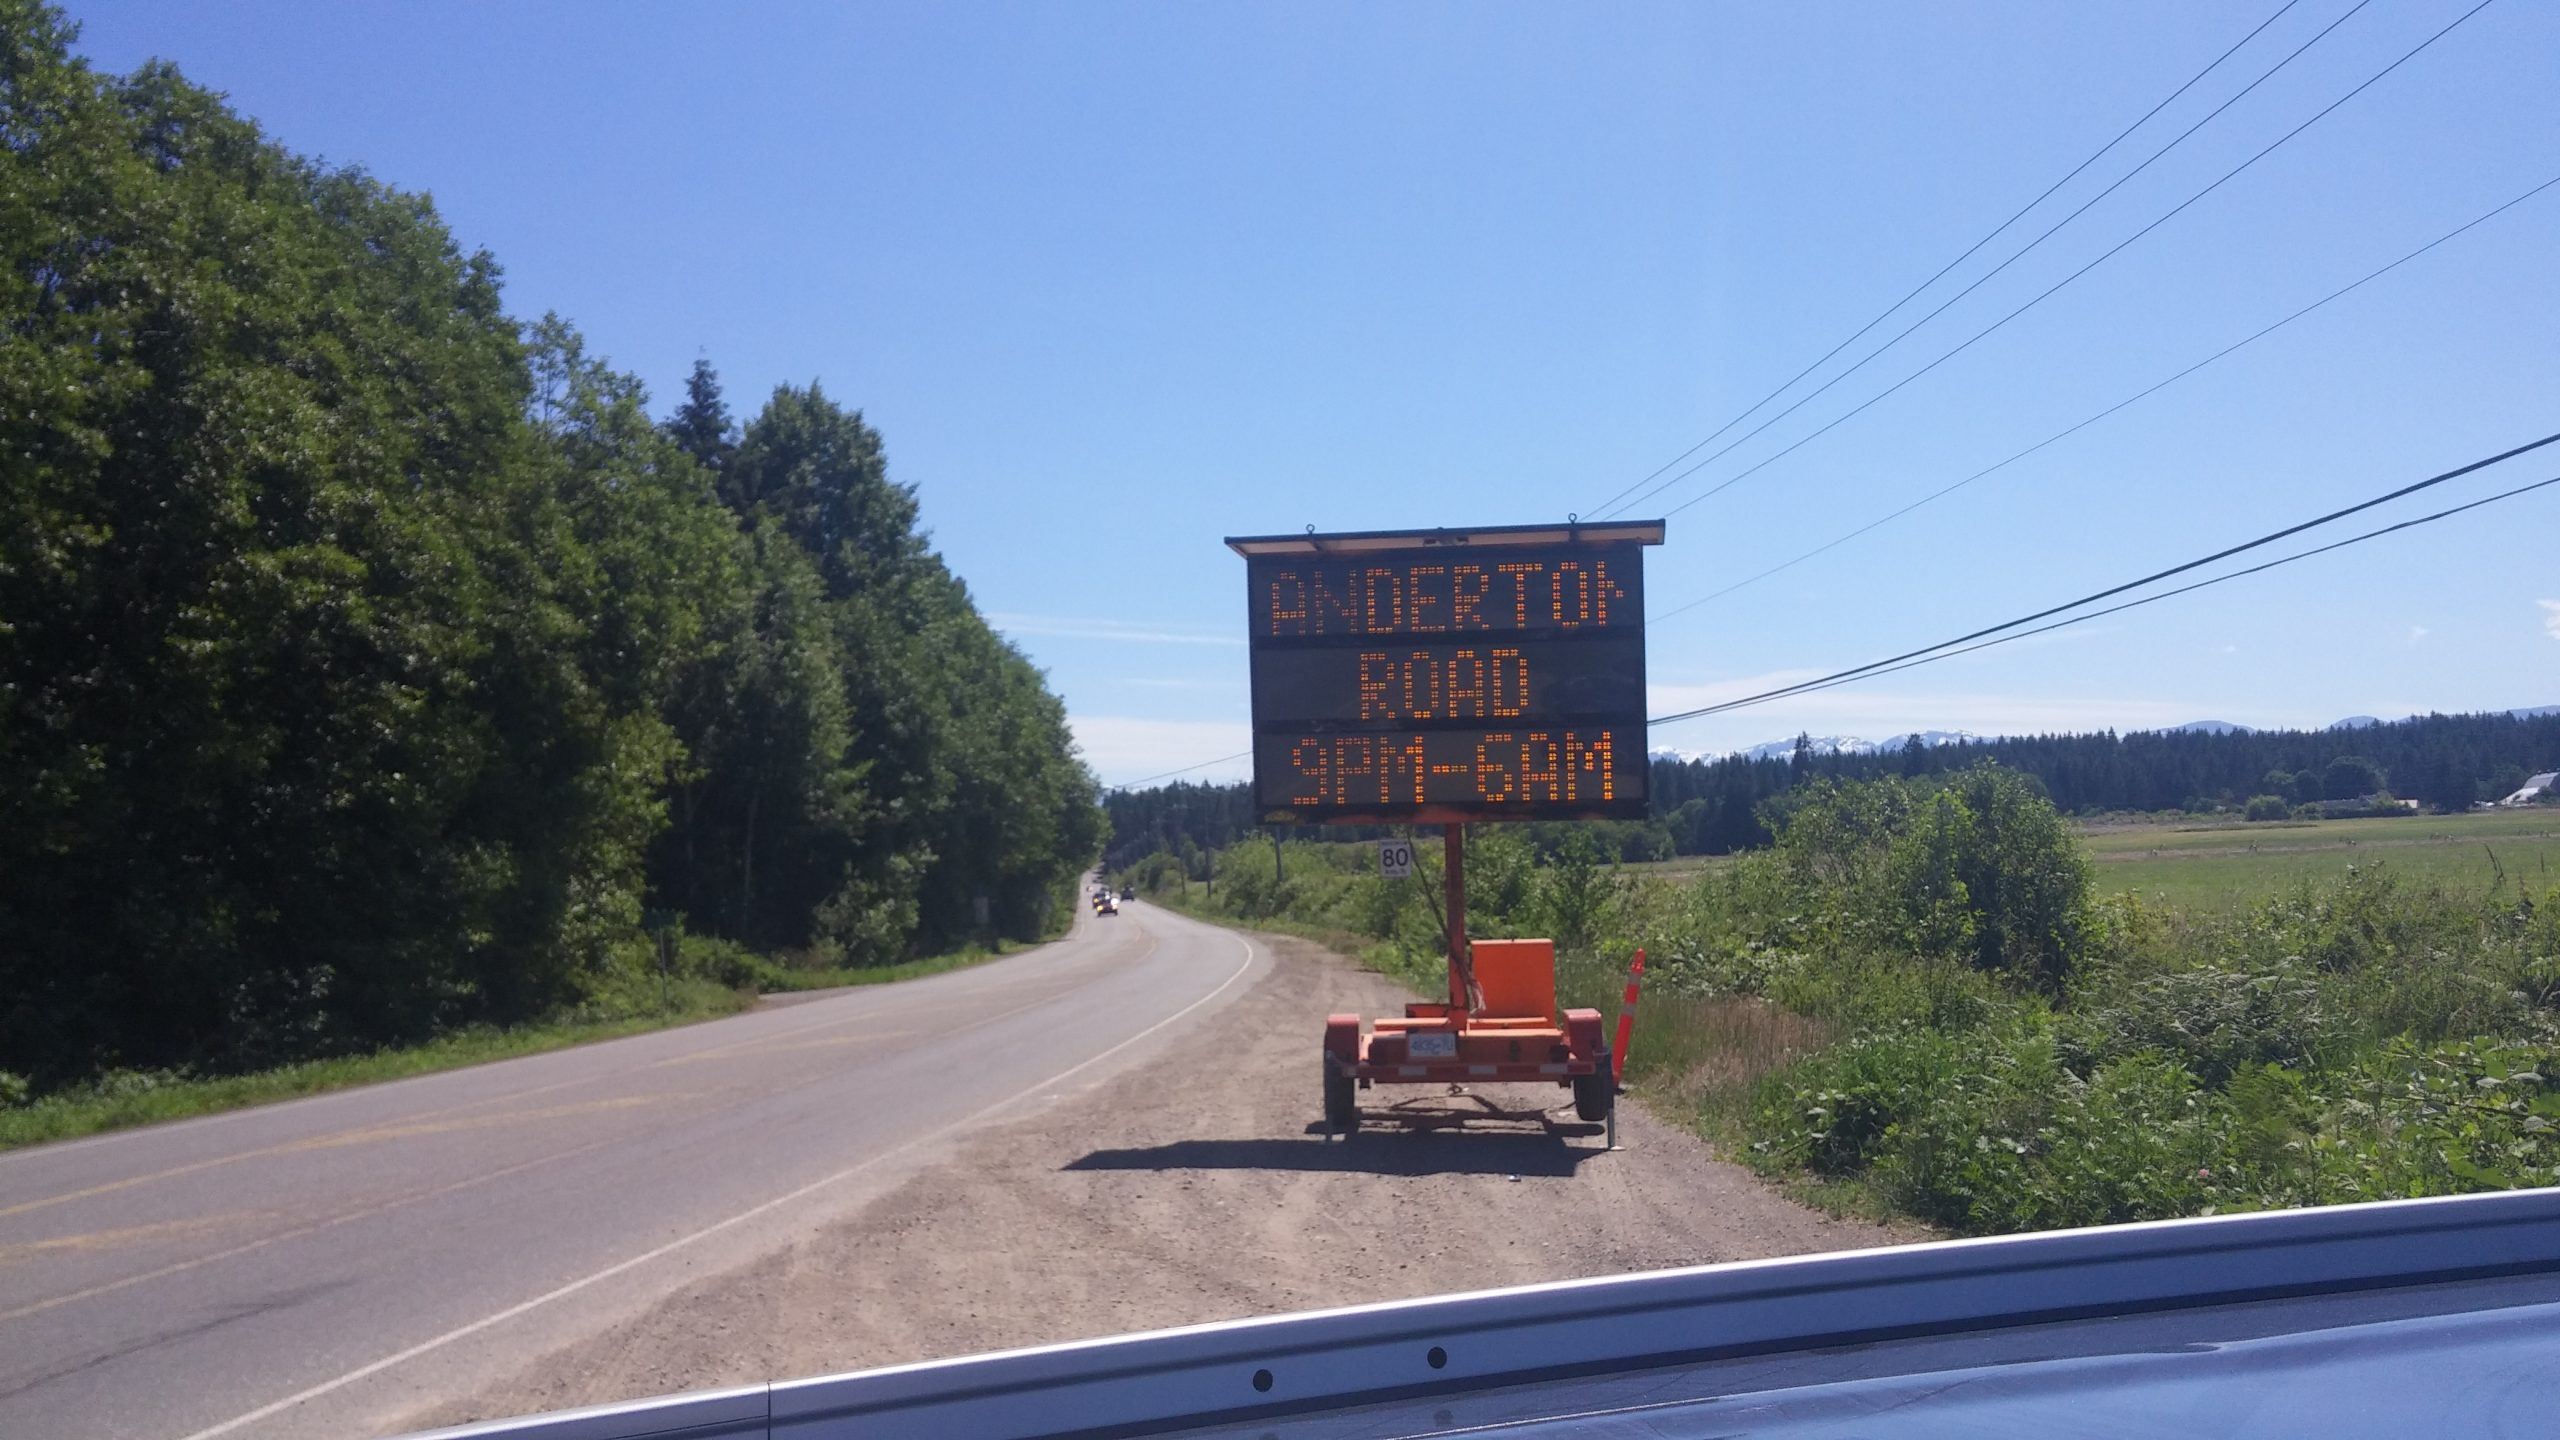 Expect Traffic Delays in the Comox Valley